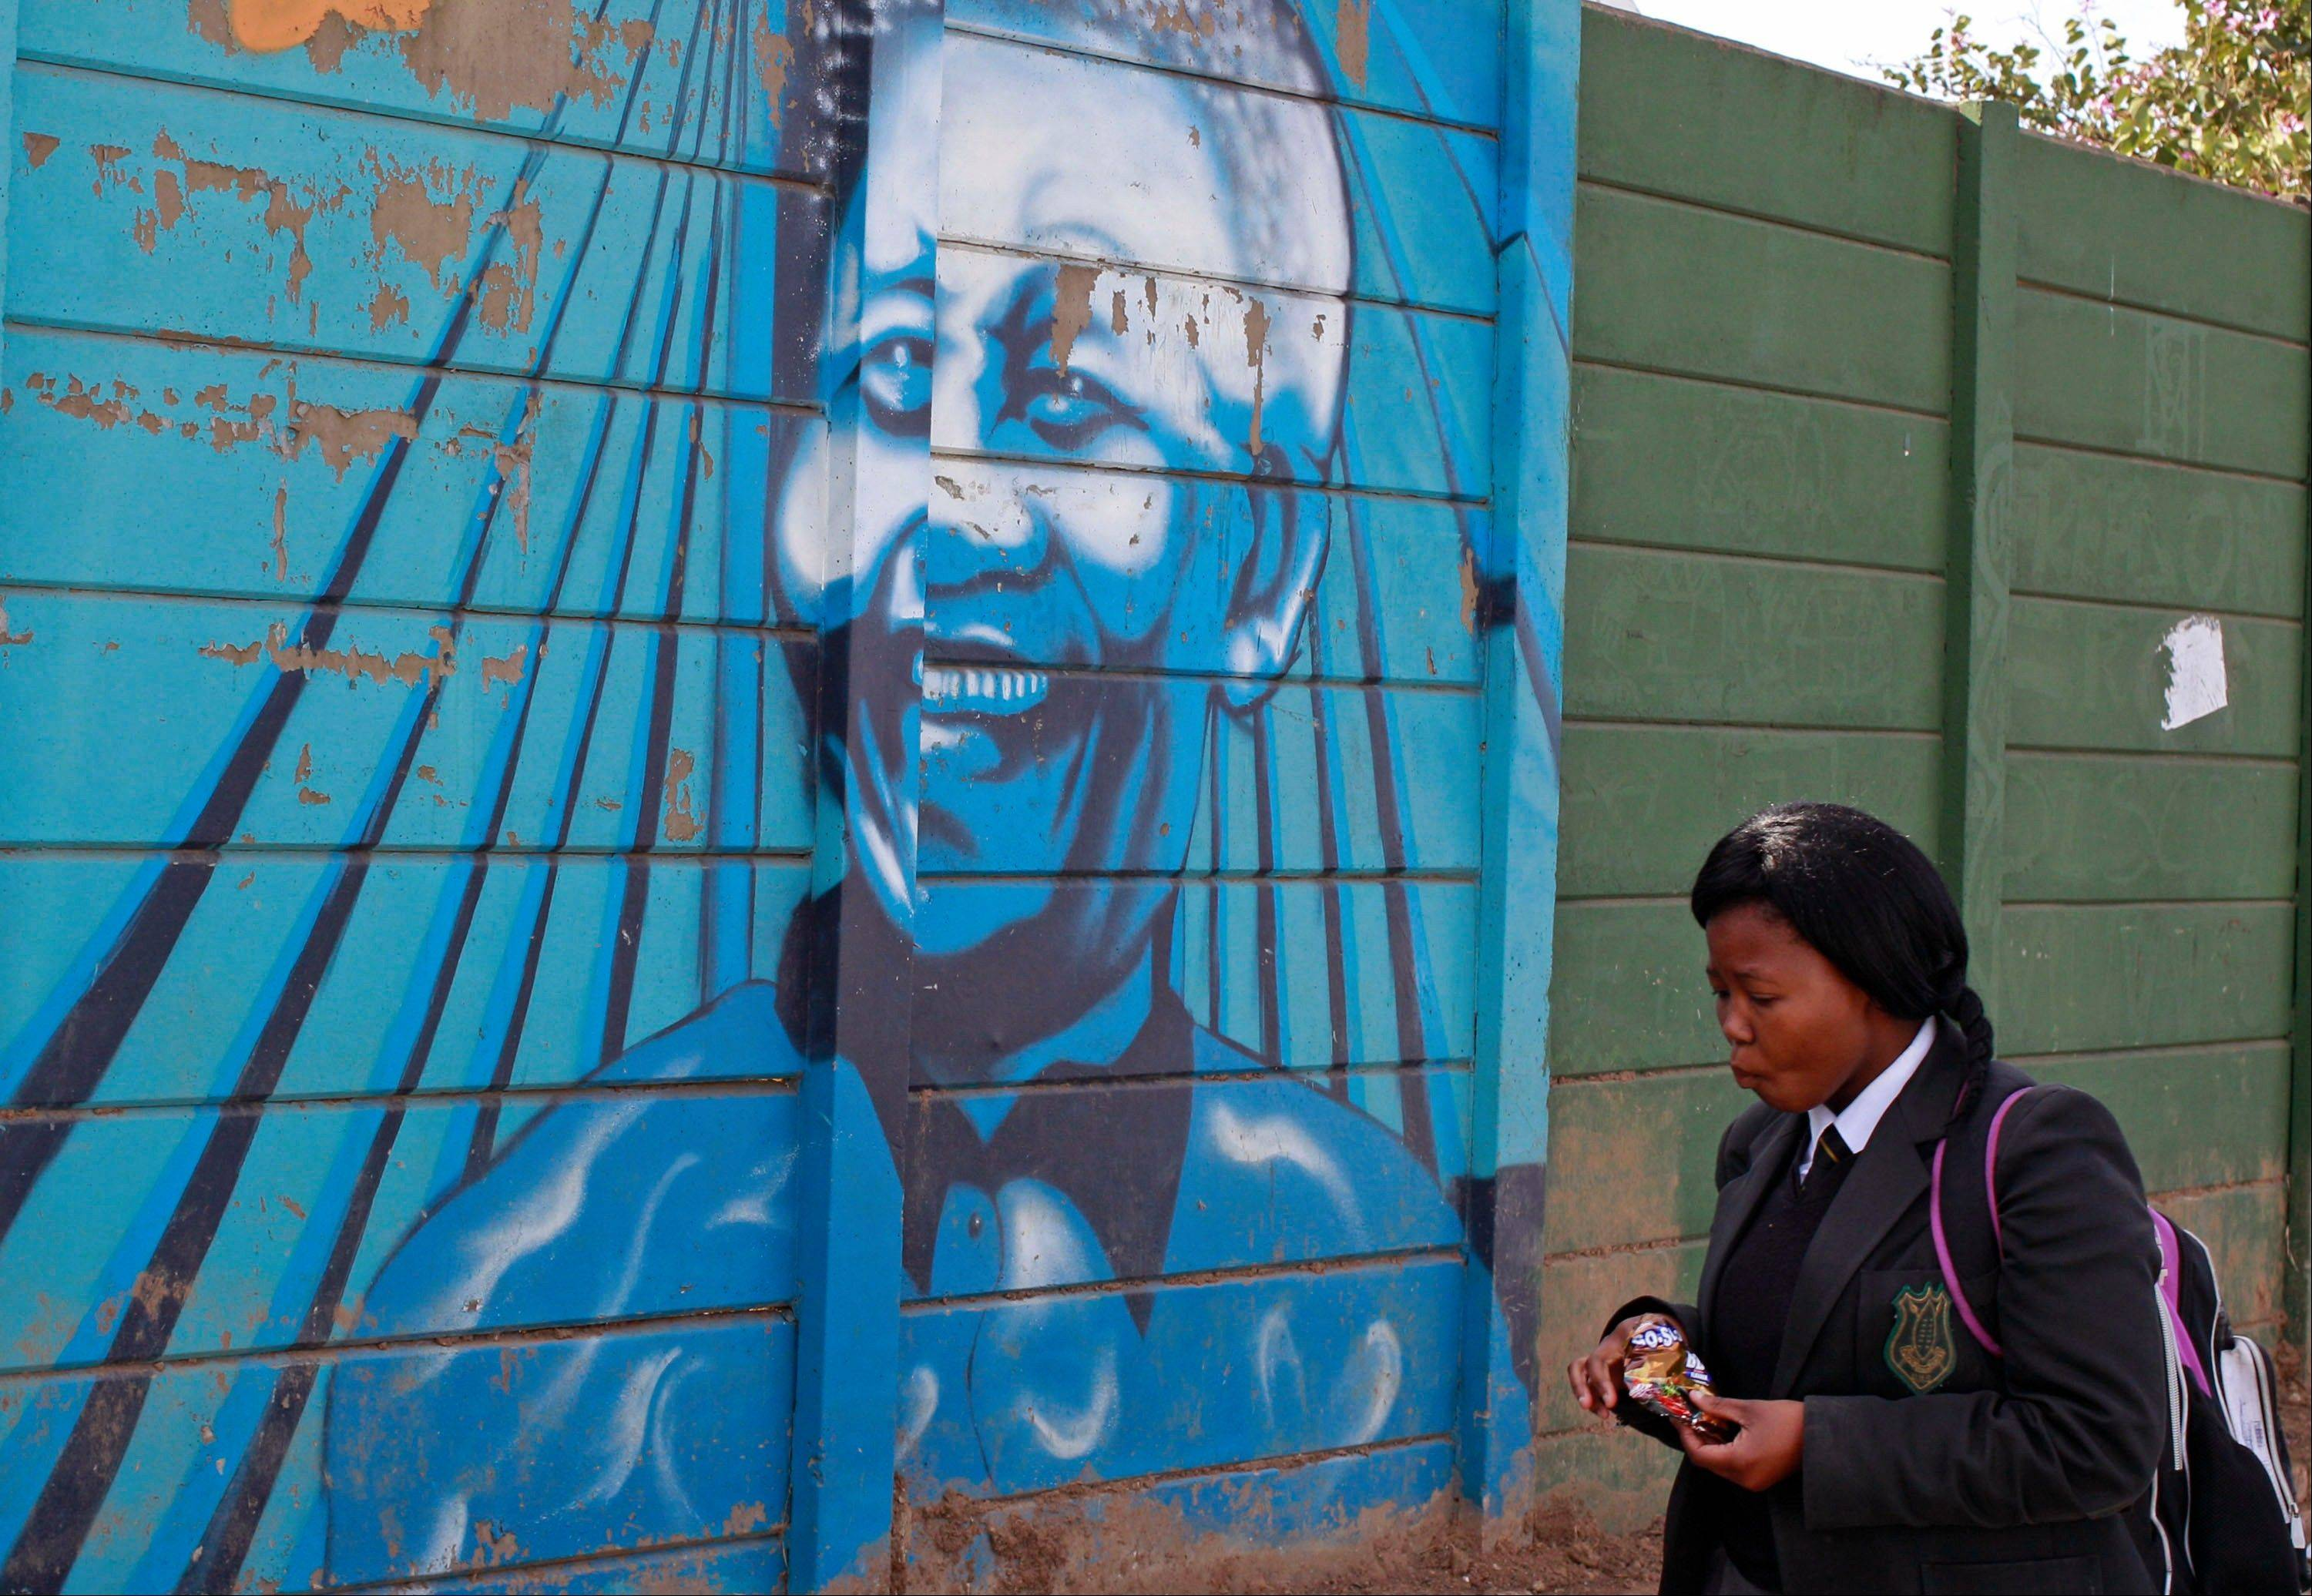 A schoolgirl walk past a mural of former South African President Nelson Mandela in the town of Umtata, South Africa, Friday, June 28, 2013. Members of Nelson Mandela�s family as well as South African Cabinet ministers have visited the hospital where the 94-year-old former president is critically ill.